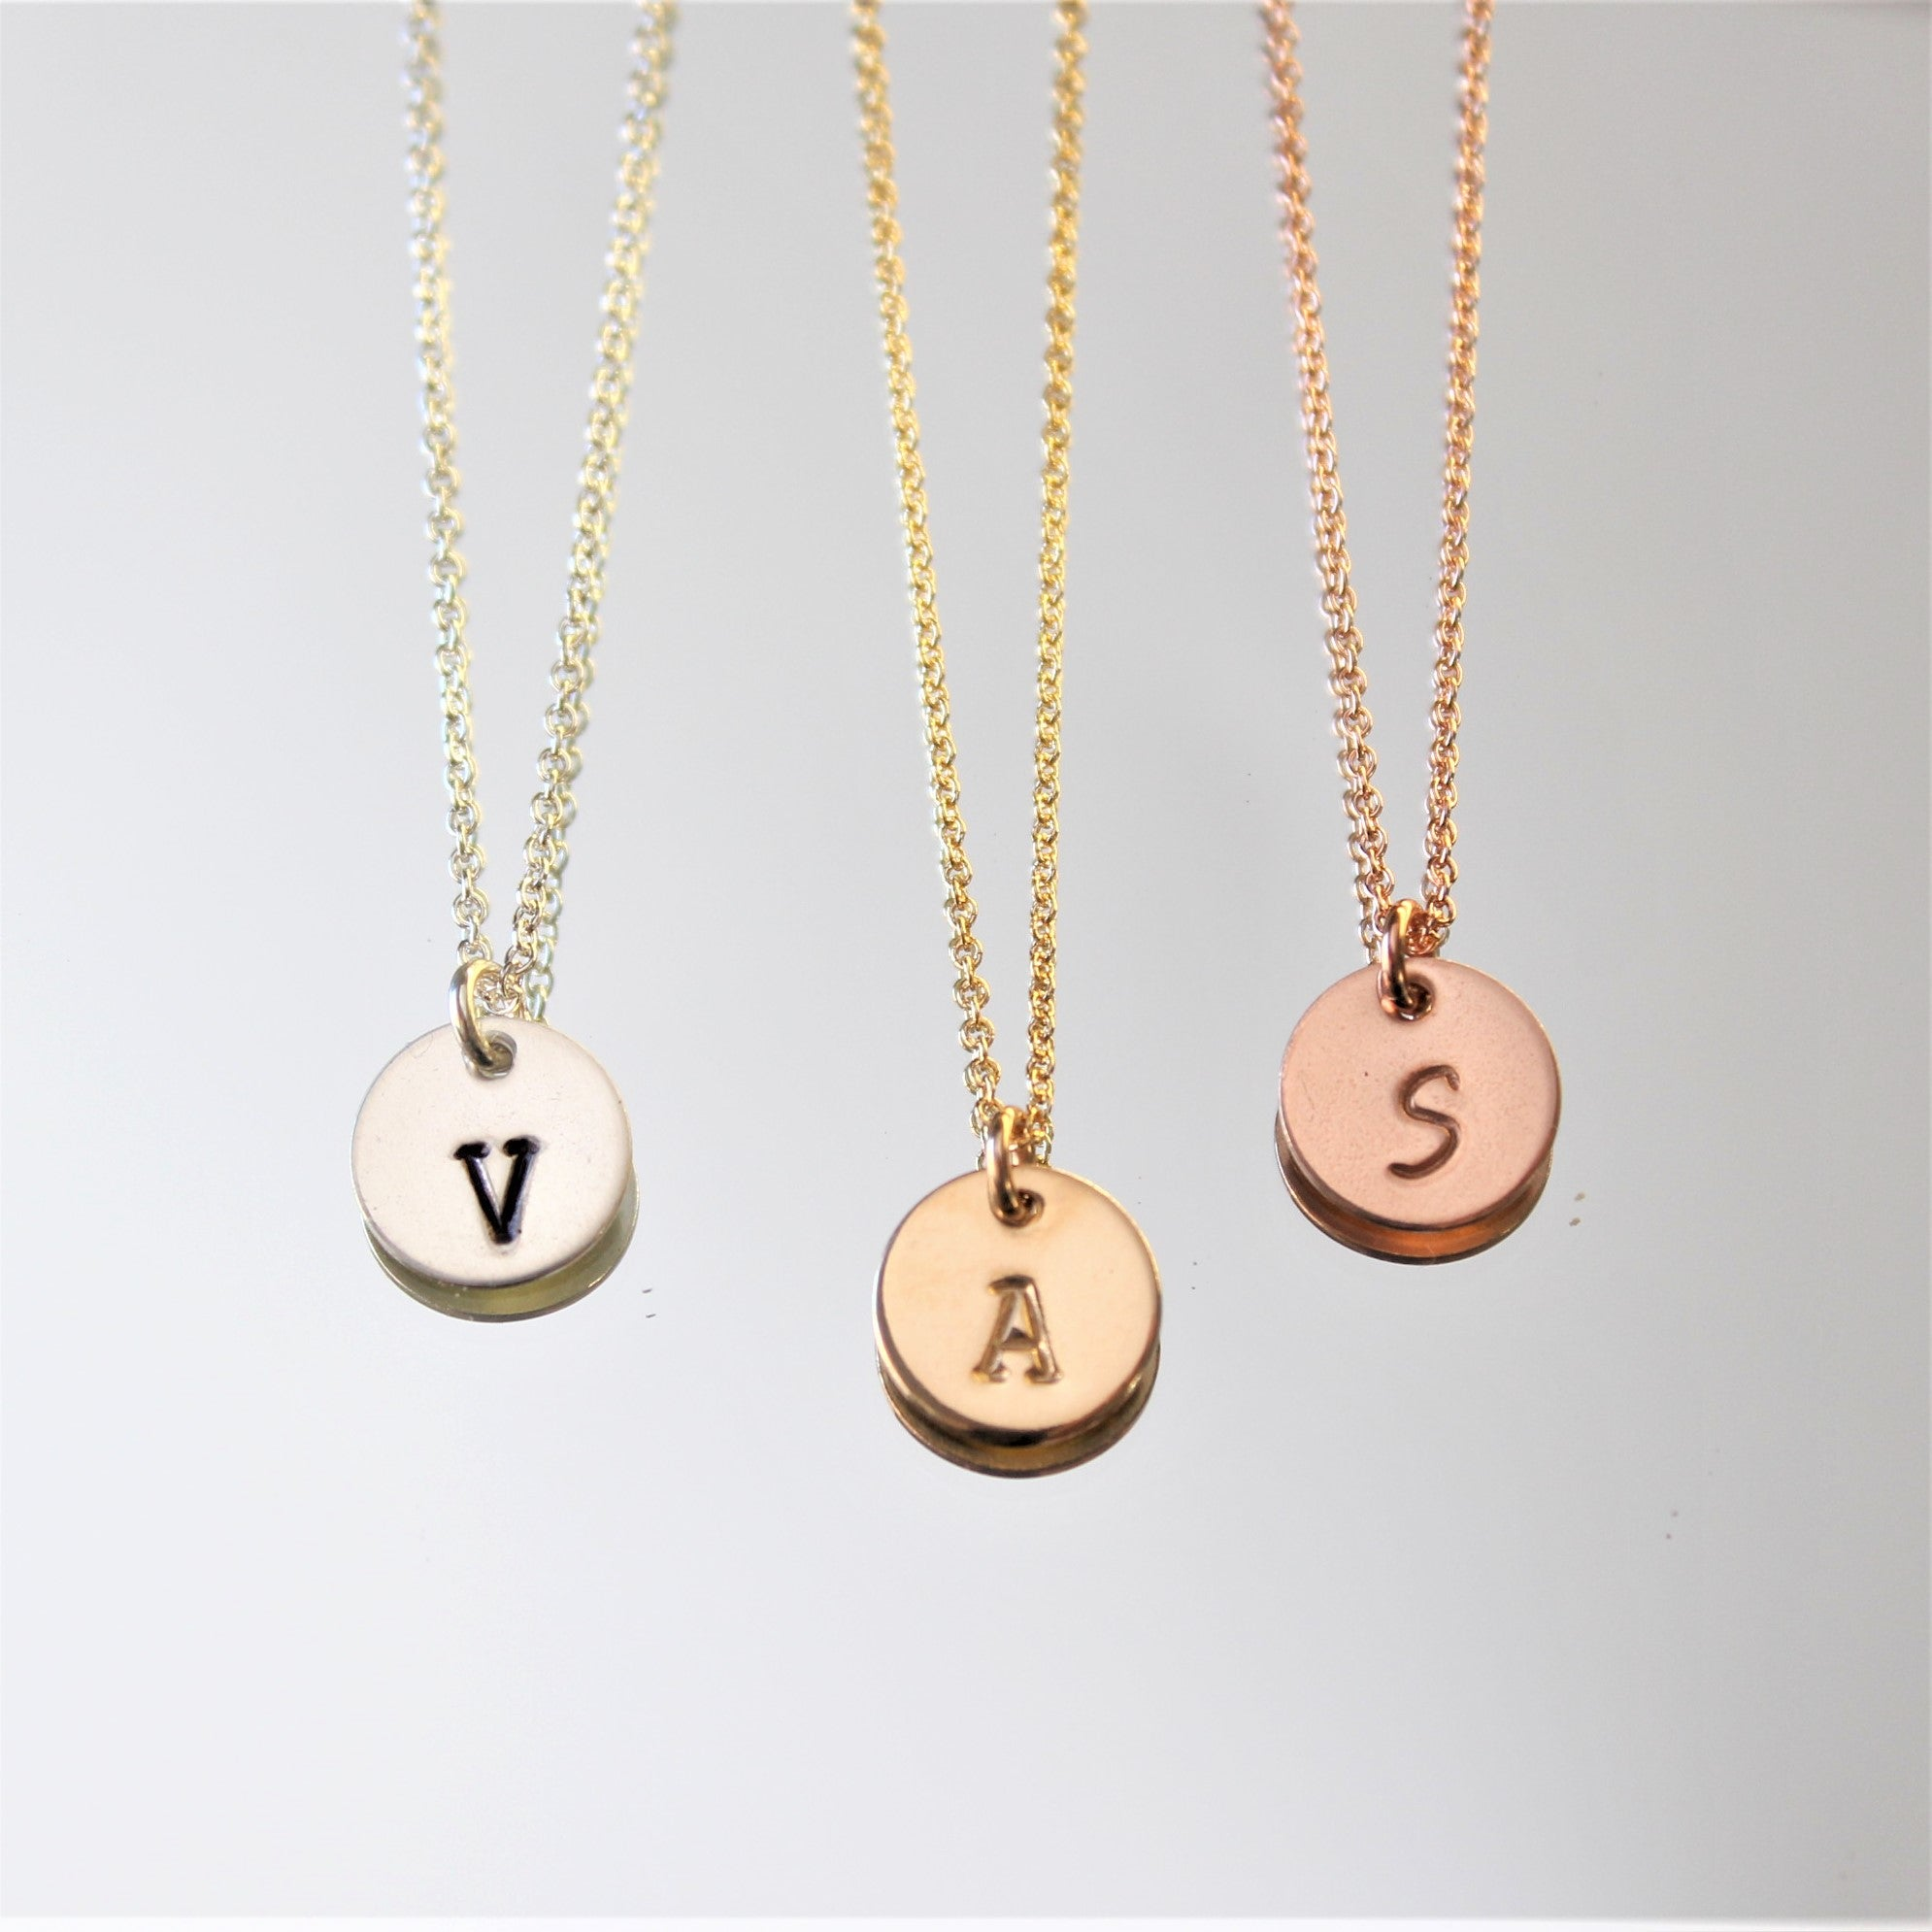 Personalized hand stamped small initial necklace